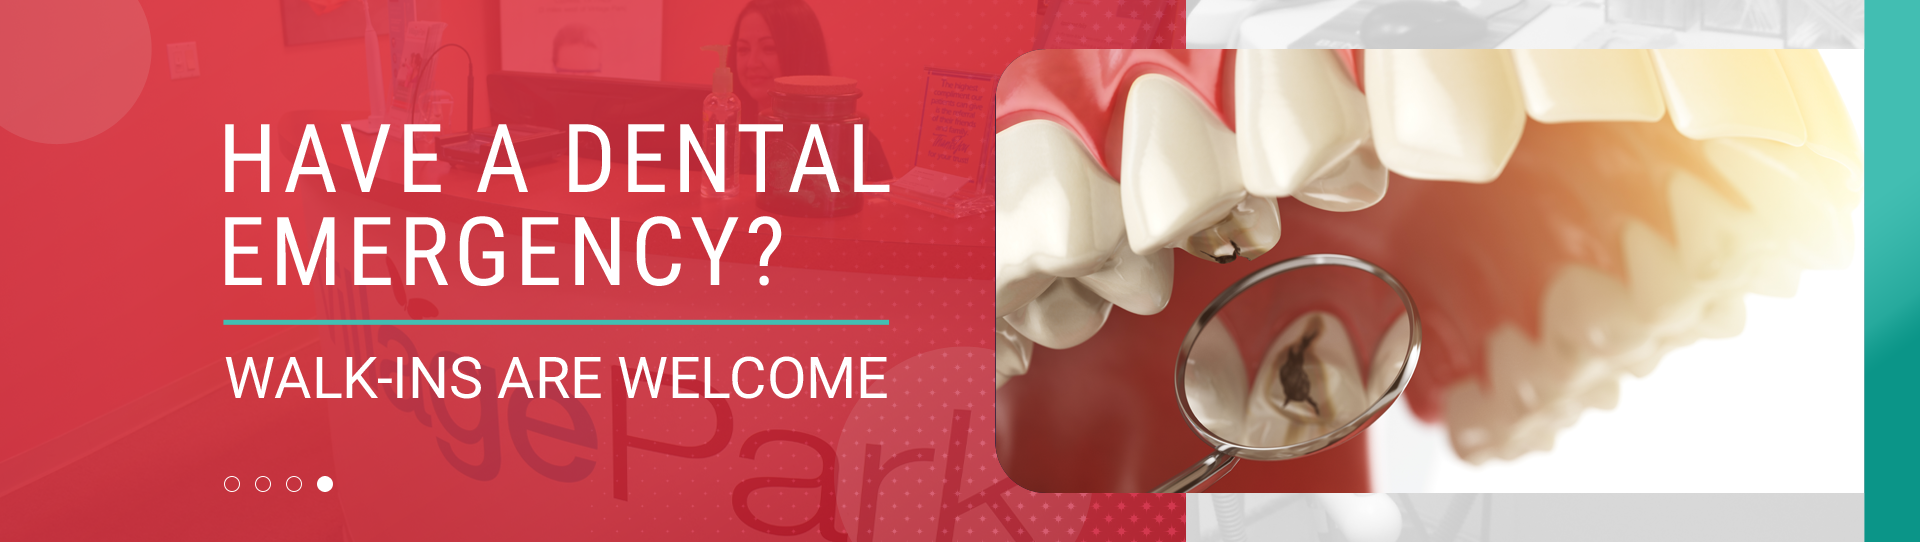 Village-Park-Home-Dental-Emergency-Banner-V1